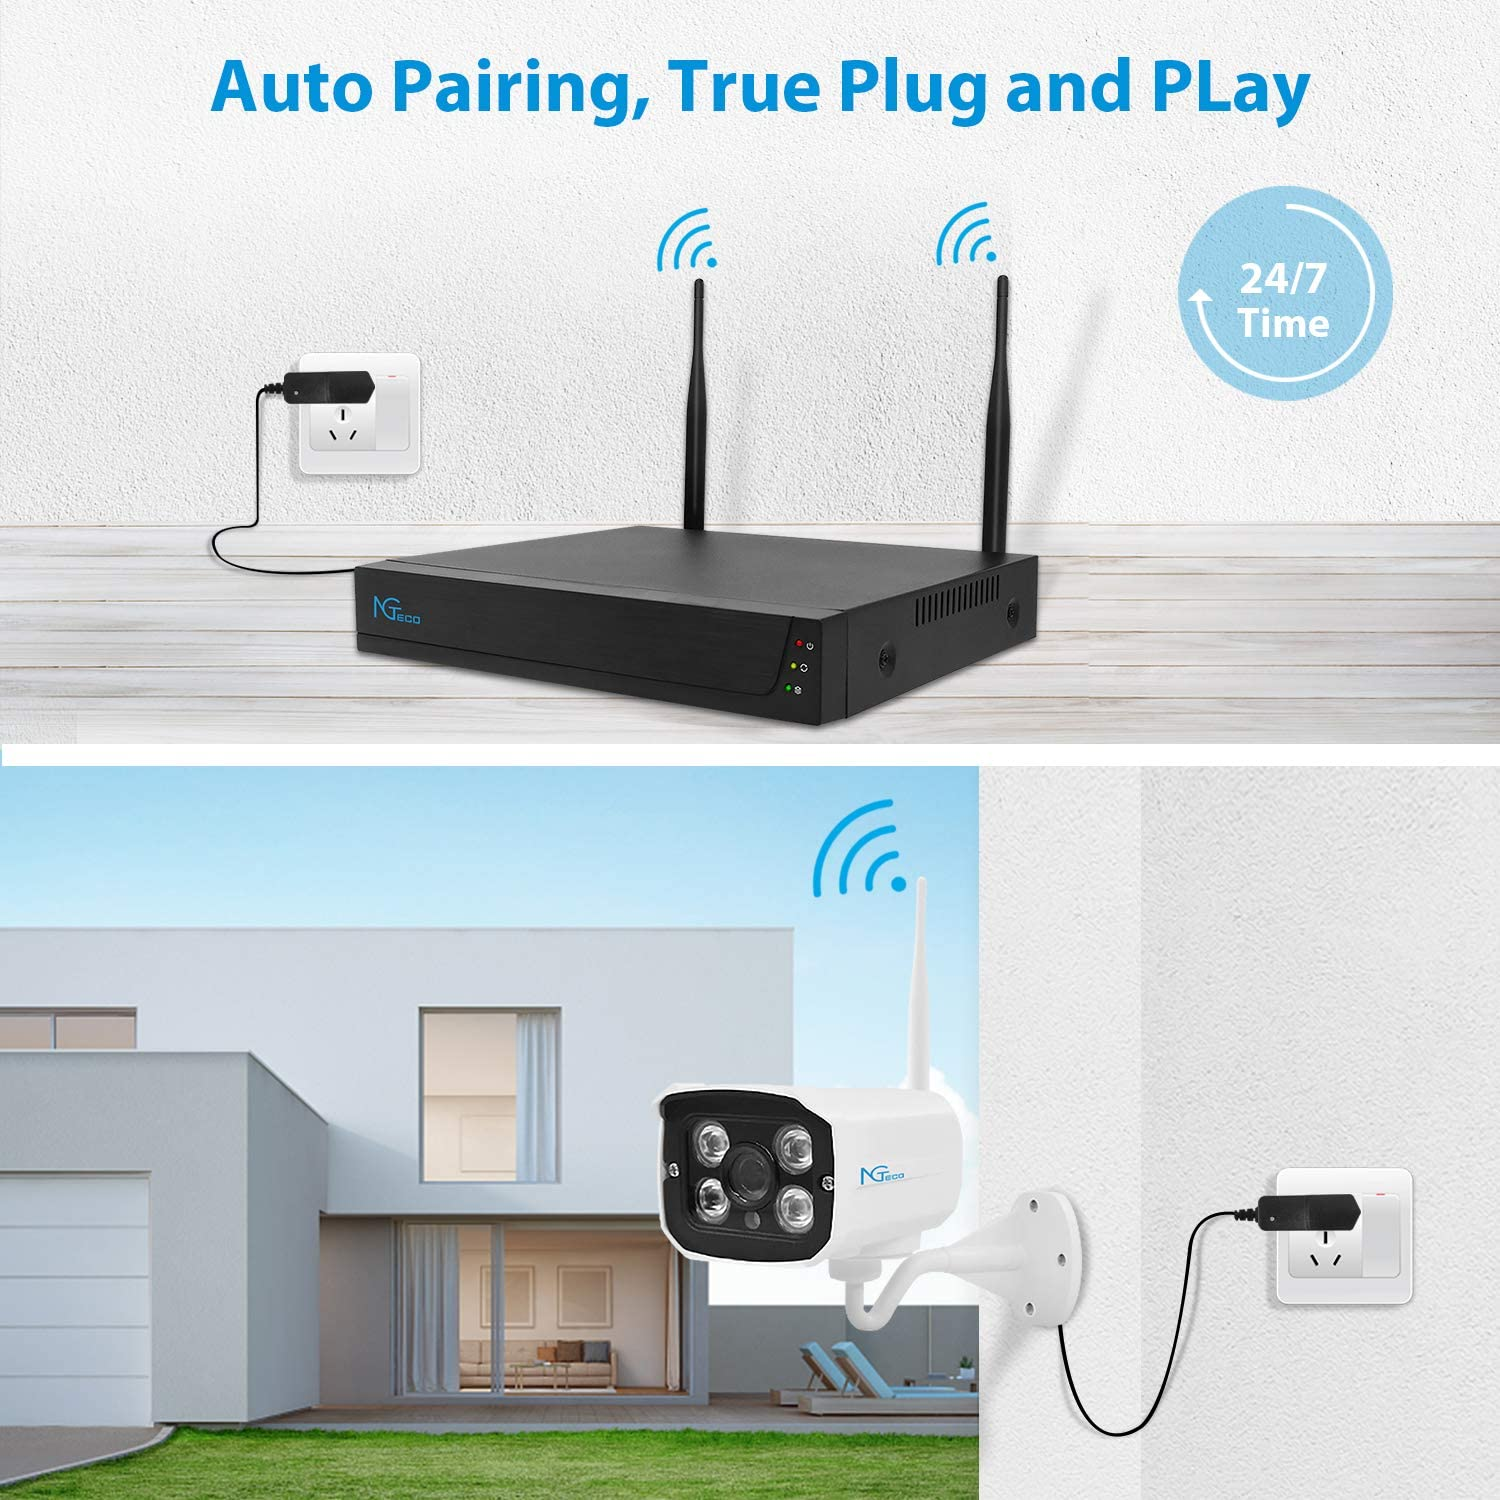 WiFi Home Surveillance NVR Kits 4PCS IP Security Cameras with IP66 Waterproof for 24//7 Recording Night Vision NGTeco Security Camera System with 1TB Hard Drive,1080P H.265 Motion Alert